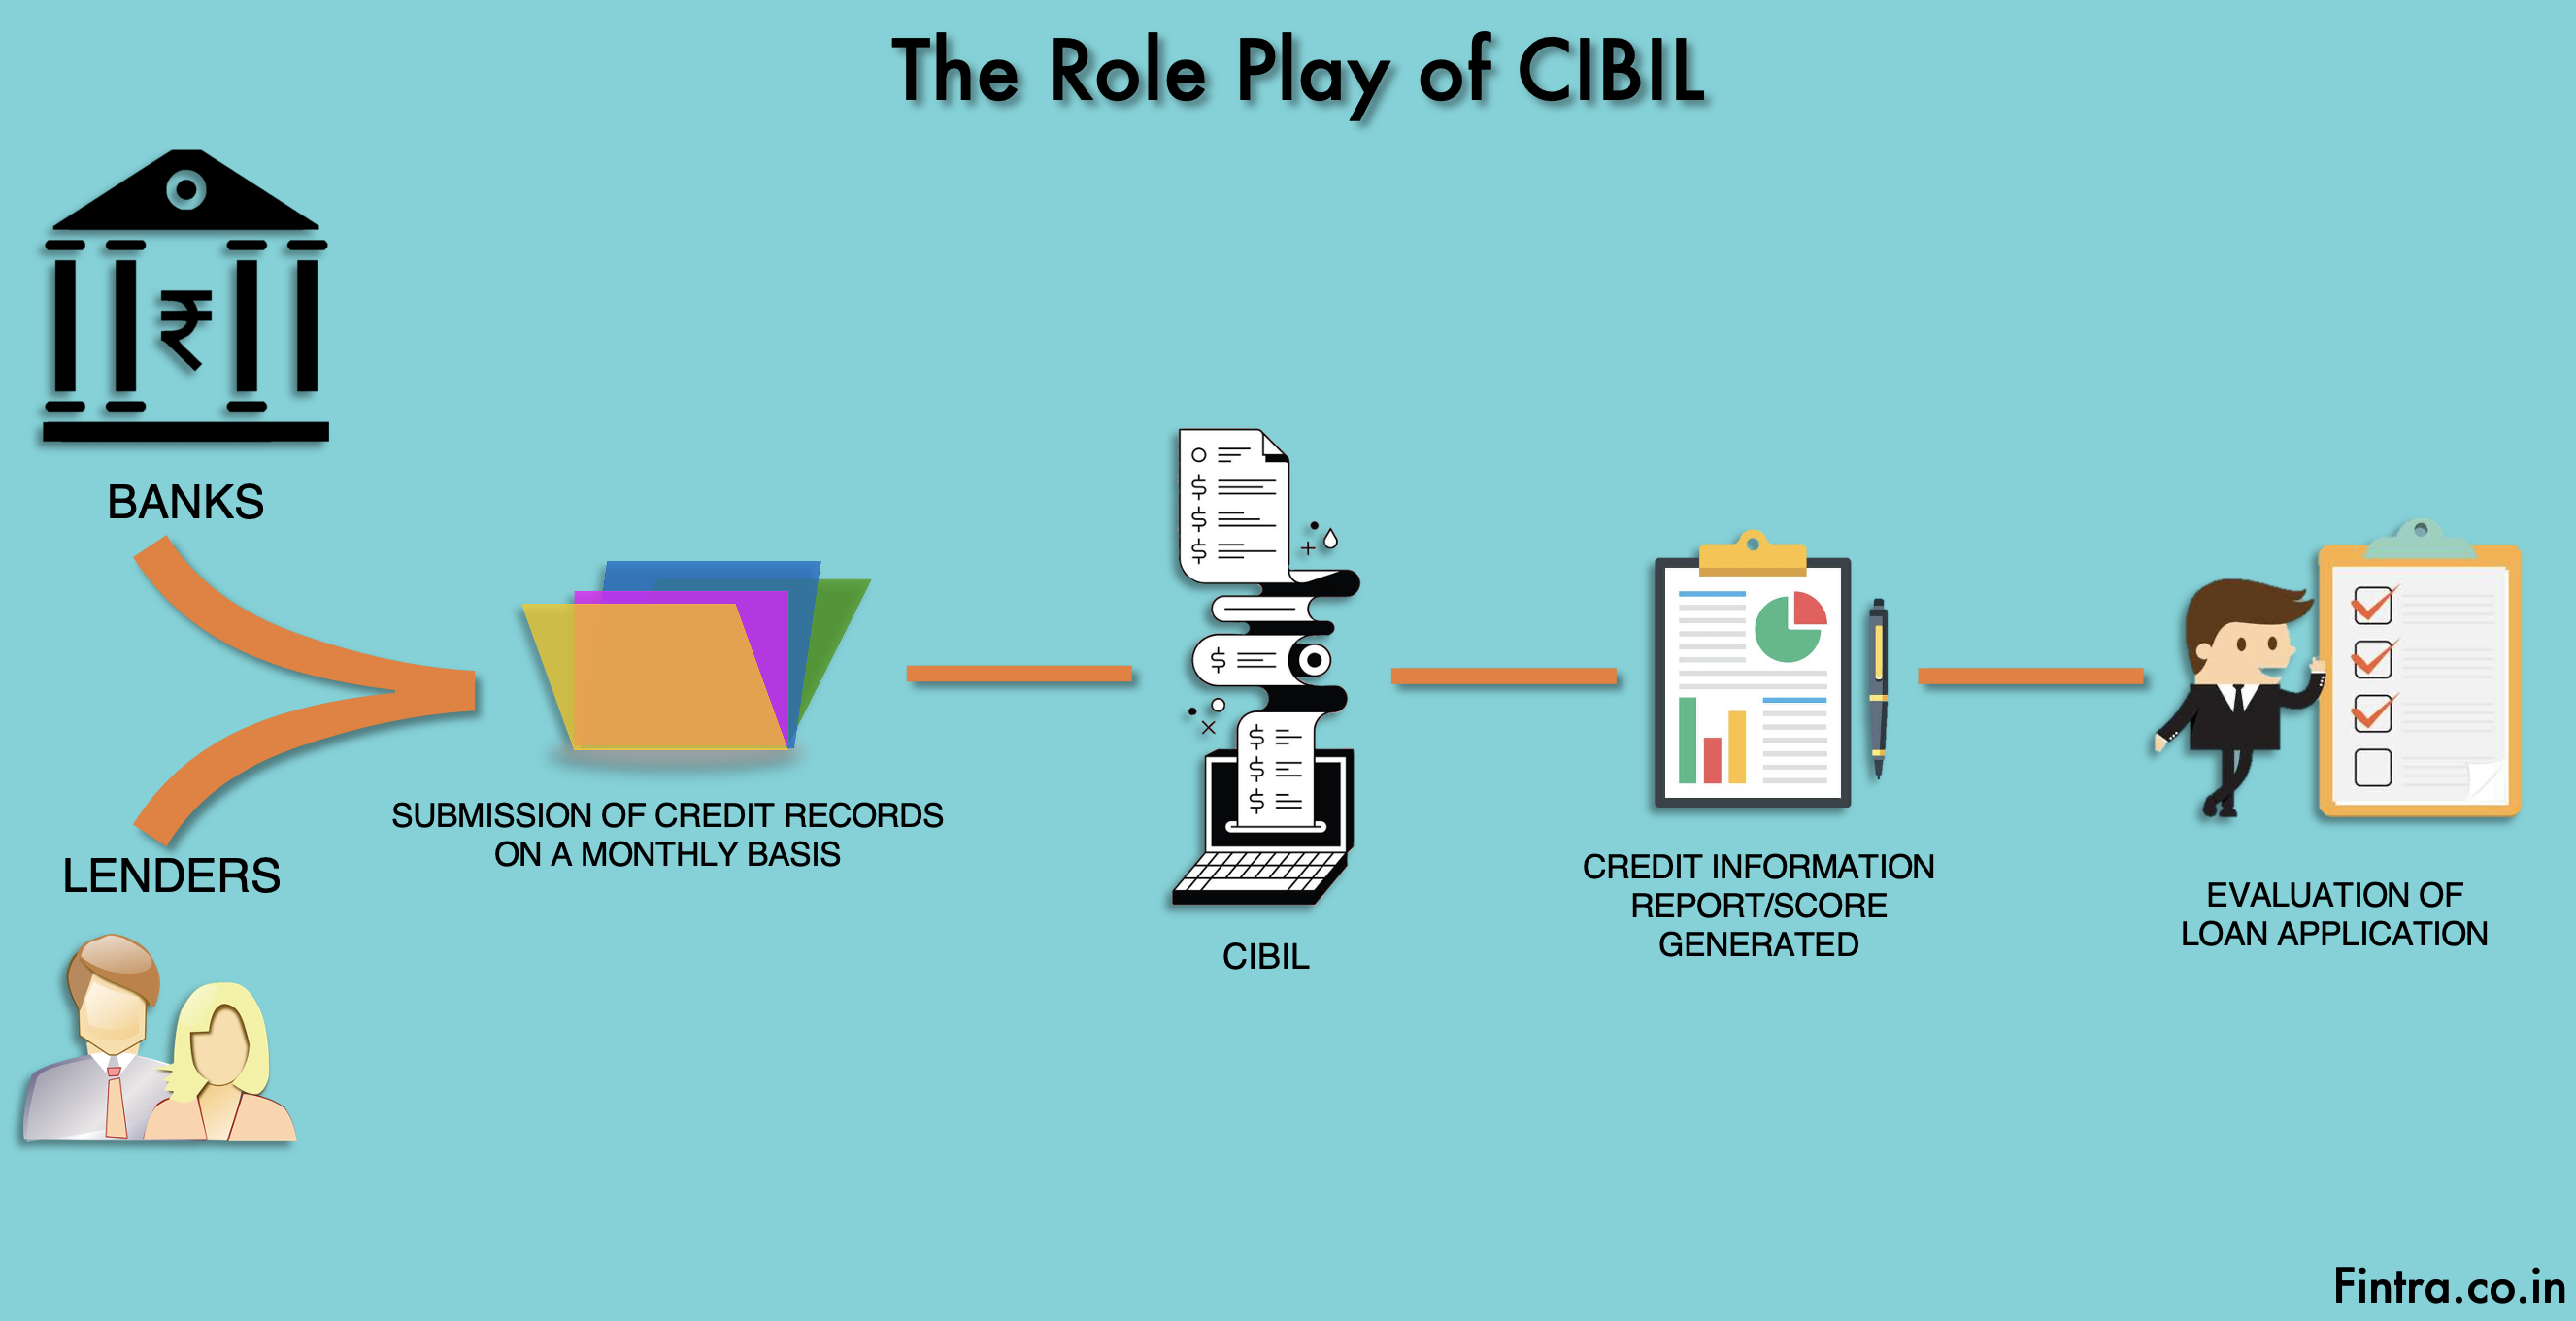 Role Play of CIBIL